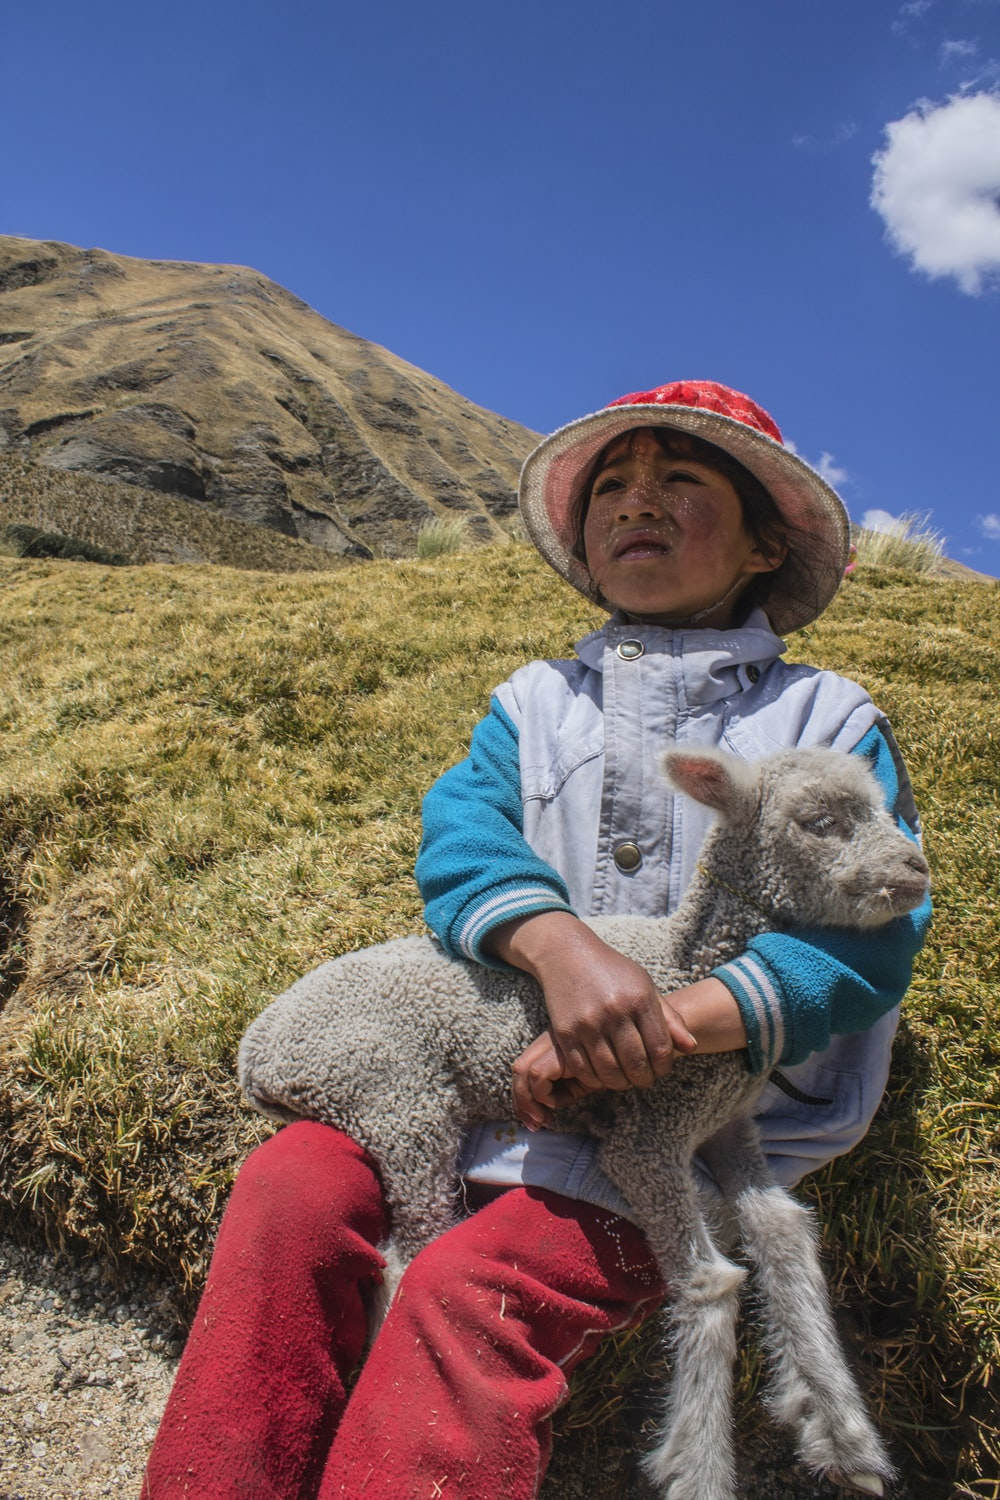 white sheep on boy's lap sitting on hill